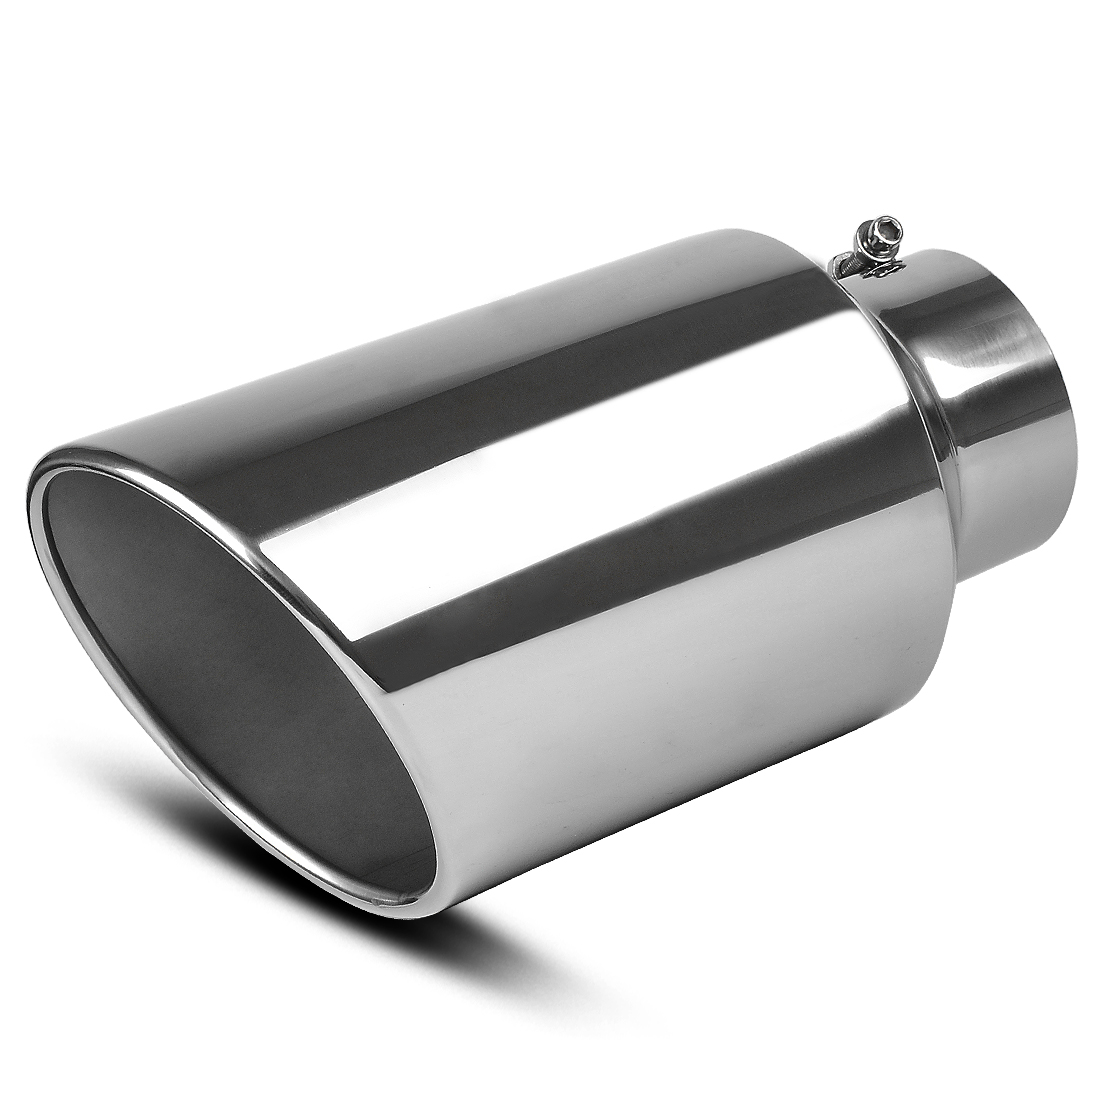 yitamotor exhaust tip 5 in x 8 out x 15 l chrome stainless steel tailpipe walmart com